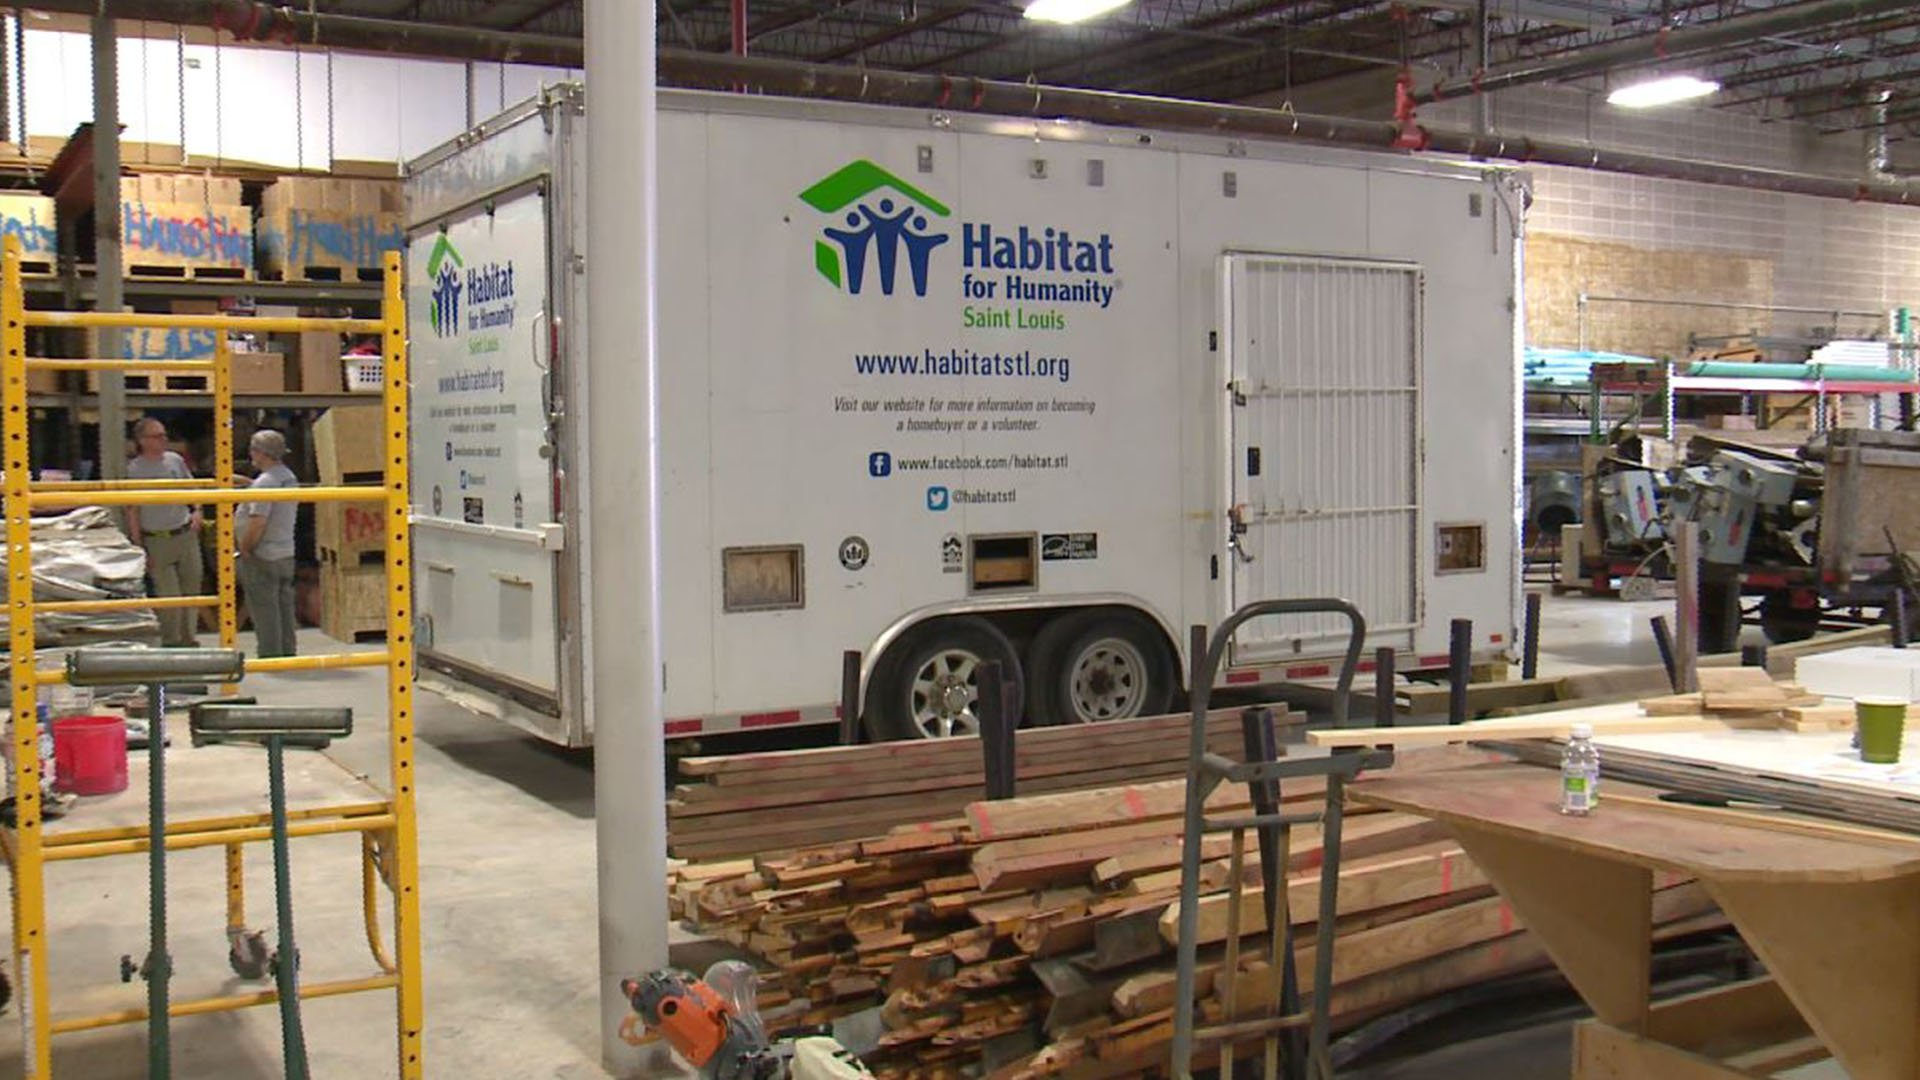 Habitat for Humanity opened a new headquarters and Restore in South St. Louis ( Credit: KMOV)